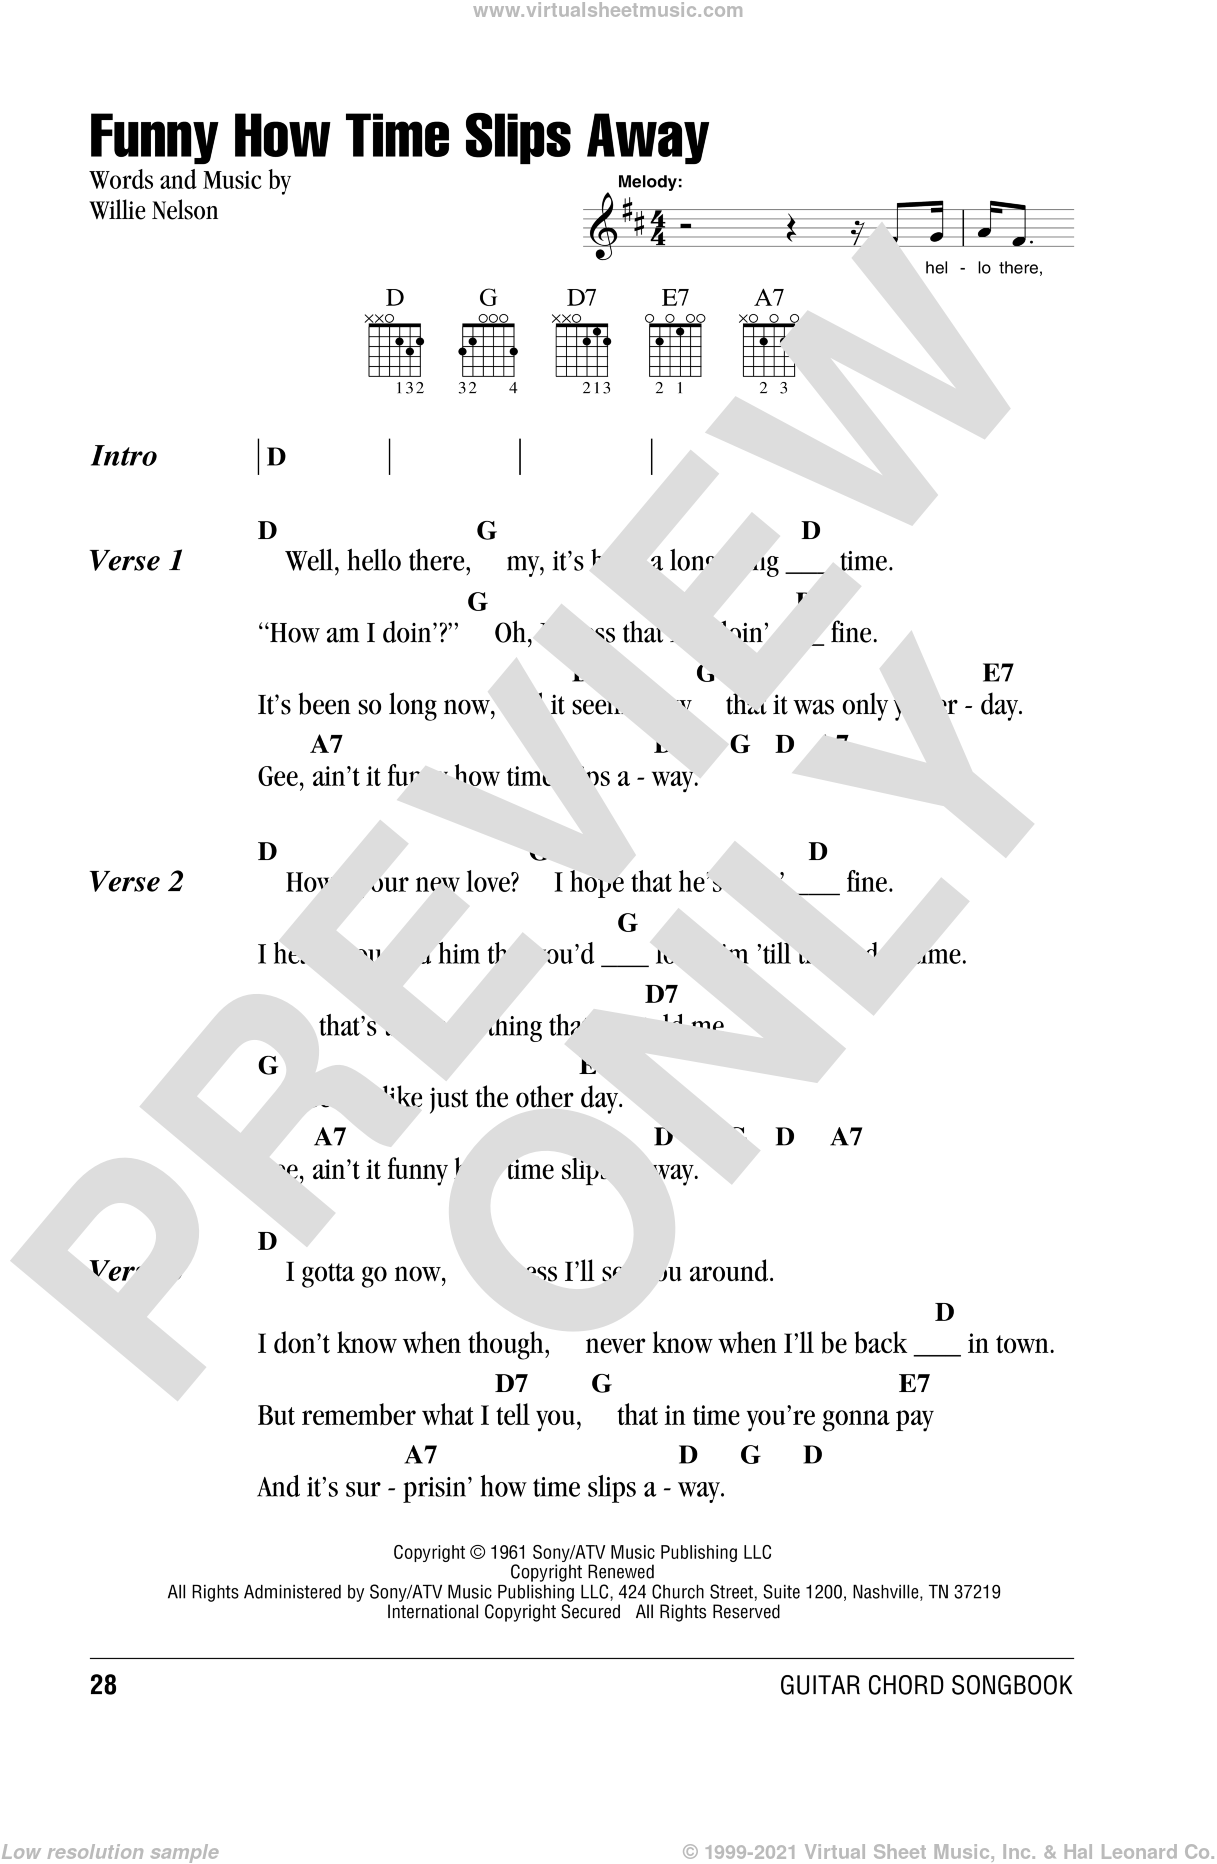 Funny How Time Slips Away sheet music for guitar (chords) by Willie Nelson, Billy Walker, Elvis Presley, Lyle Lovett and Al Green and Narvel Felts, intermediate skill level